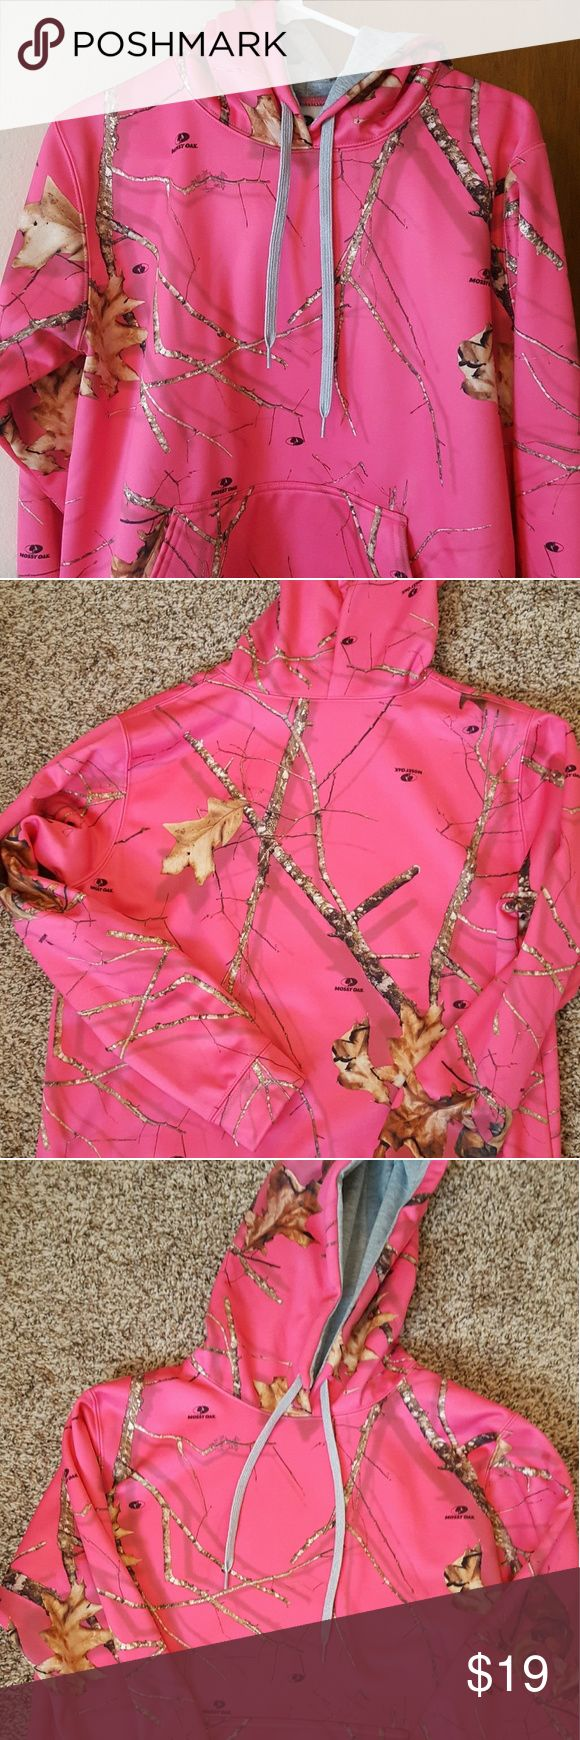 Mossy Oak Hot Pink Sz Med Hoodie, EUC Hot Pink Mossy Oak Camo Sz M Hoodie in excellent used condition. Only tried on, was a gift. No signs of wear, pretty pop of color and nice yet subtle pattern, medium weight hoodie. Open to offers. Let me know if you have any questions, thank you! Mossy Oak Tops Sweatshirts & Hoodies